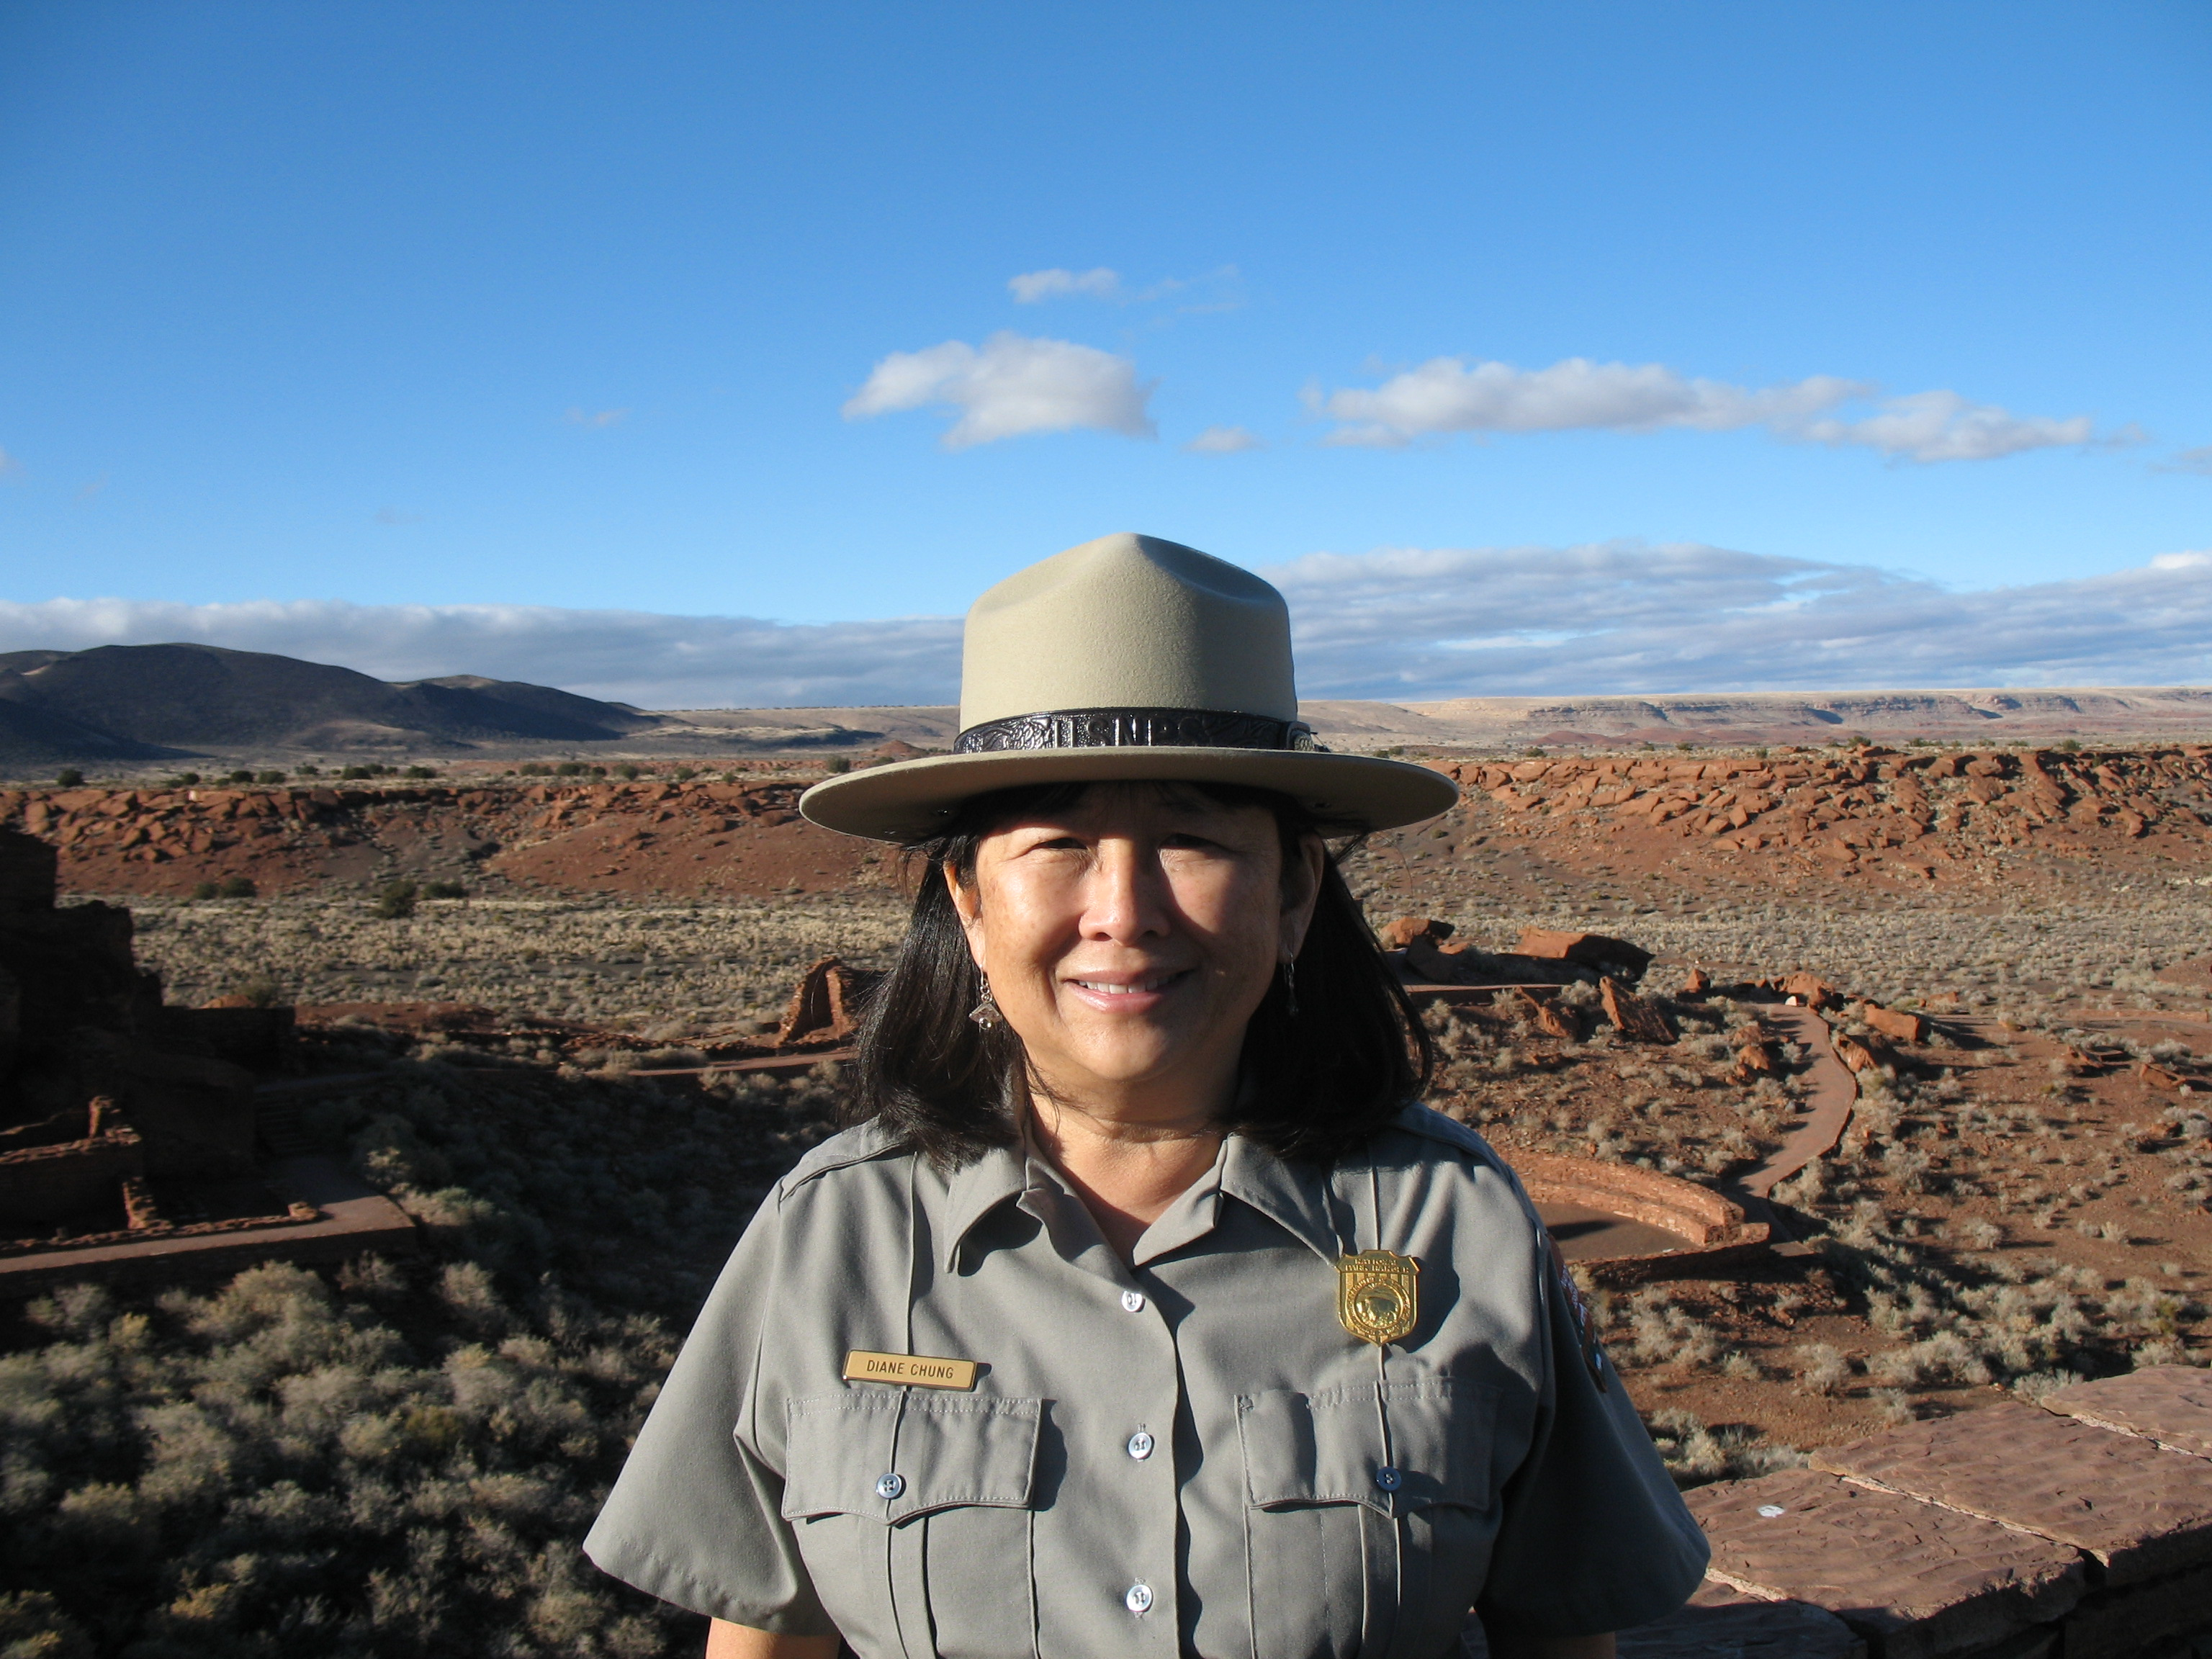 Katmai Superintendent Diane Chung at Wupatki National Monument